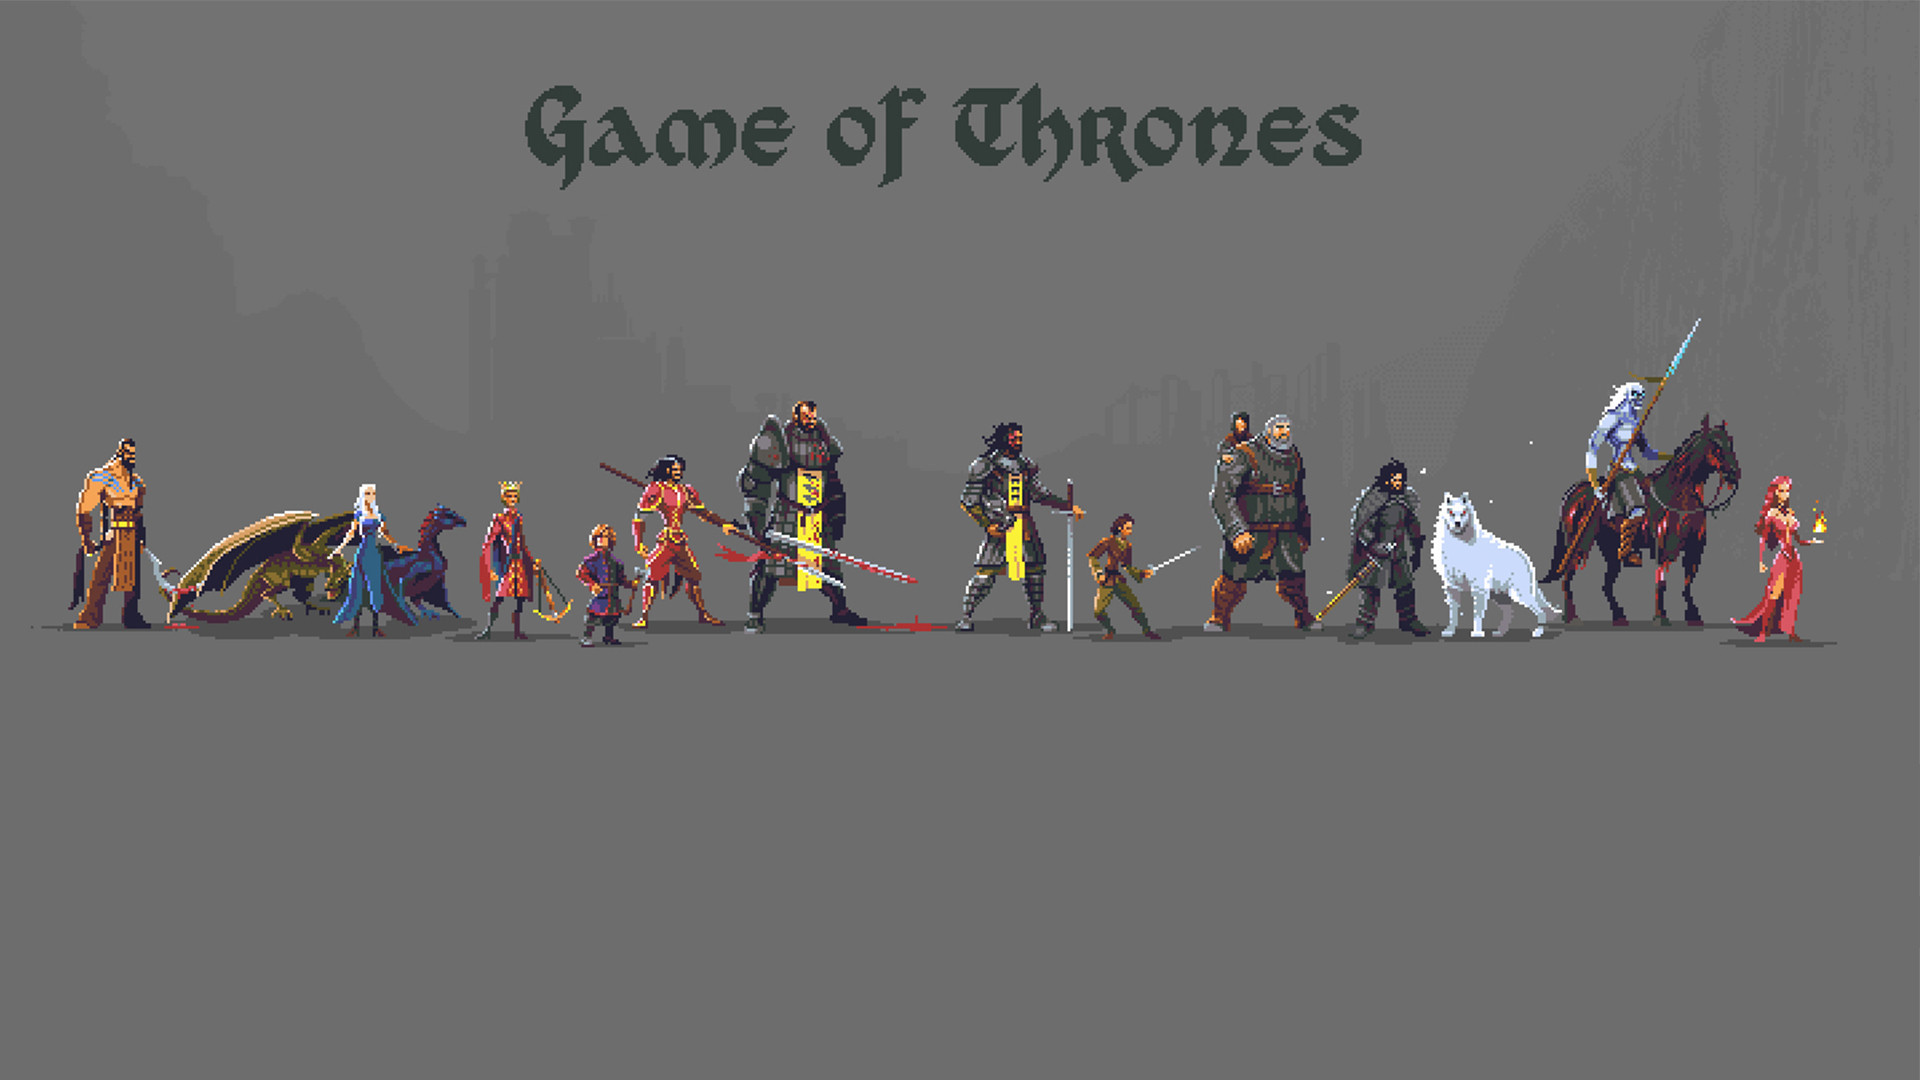 1920x1080 Game of Thrones Pixel art [] : wallpapers